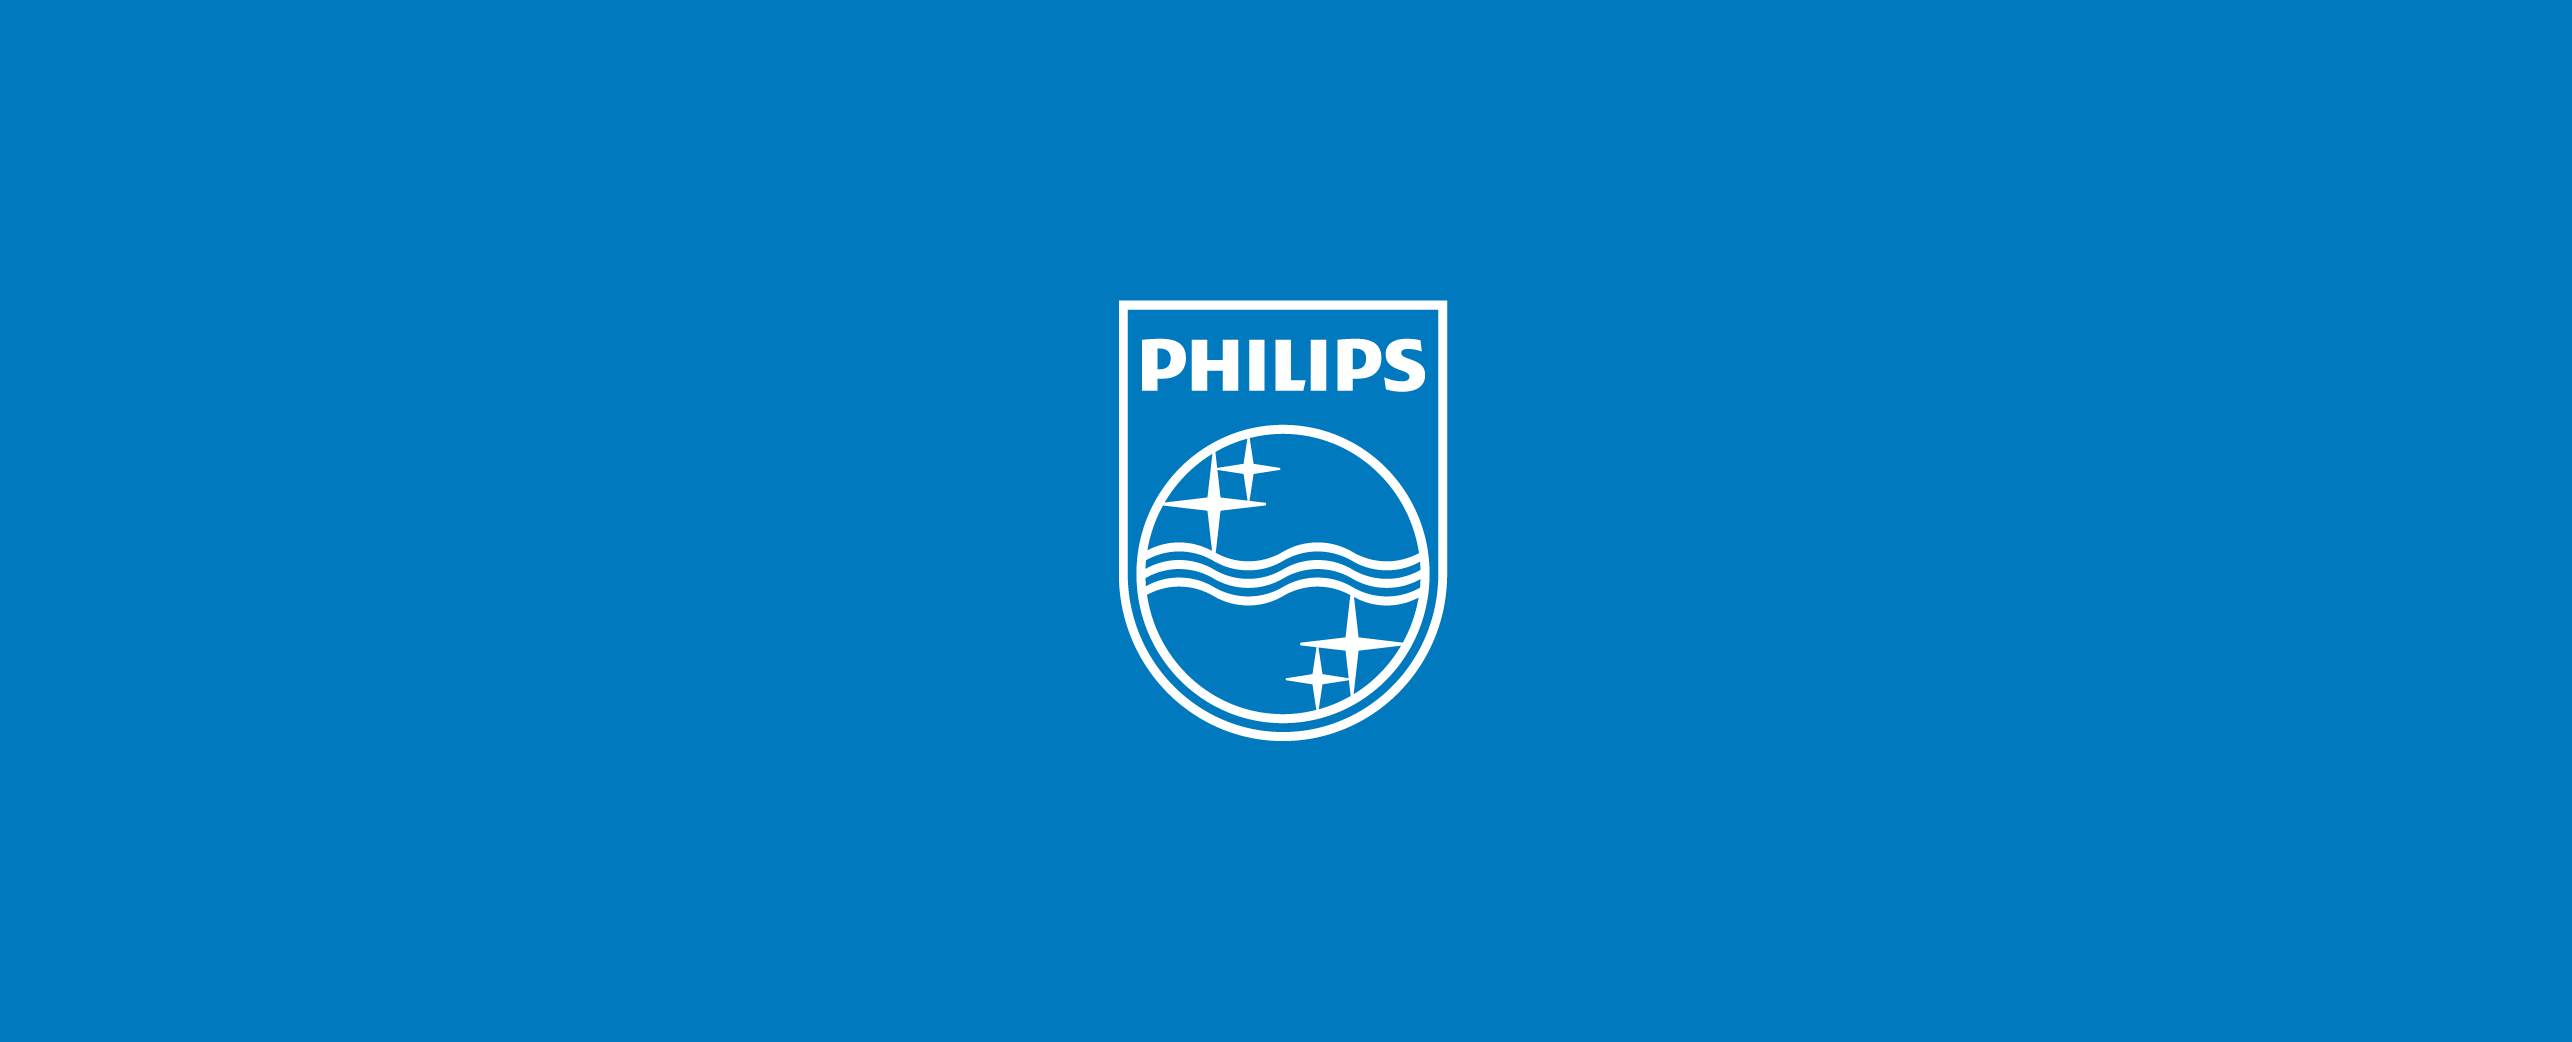 Philips_Project-04